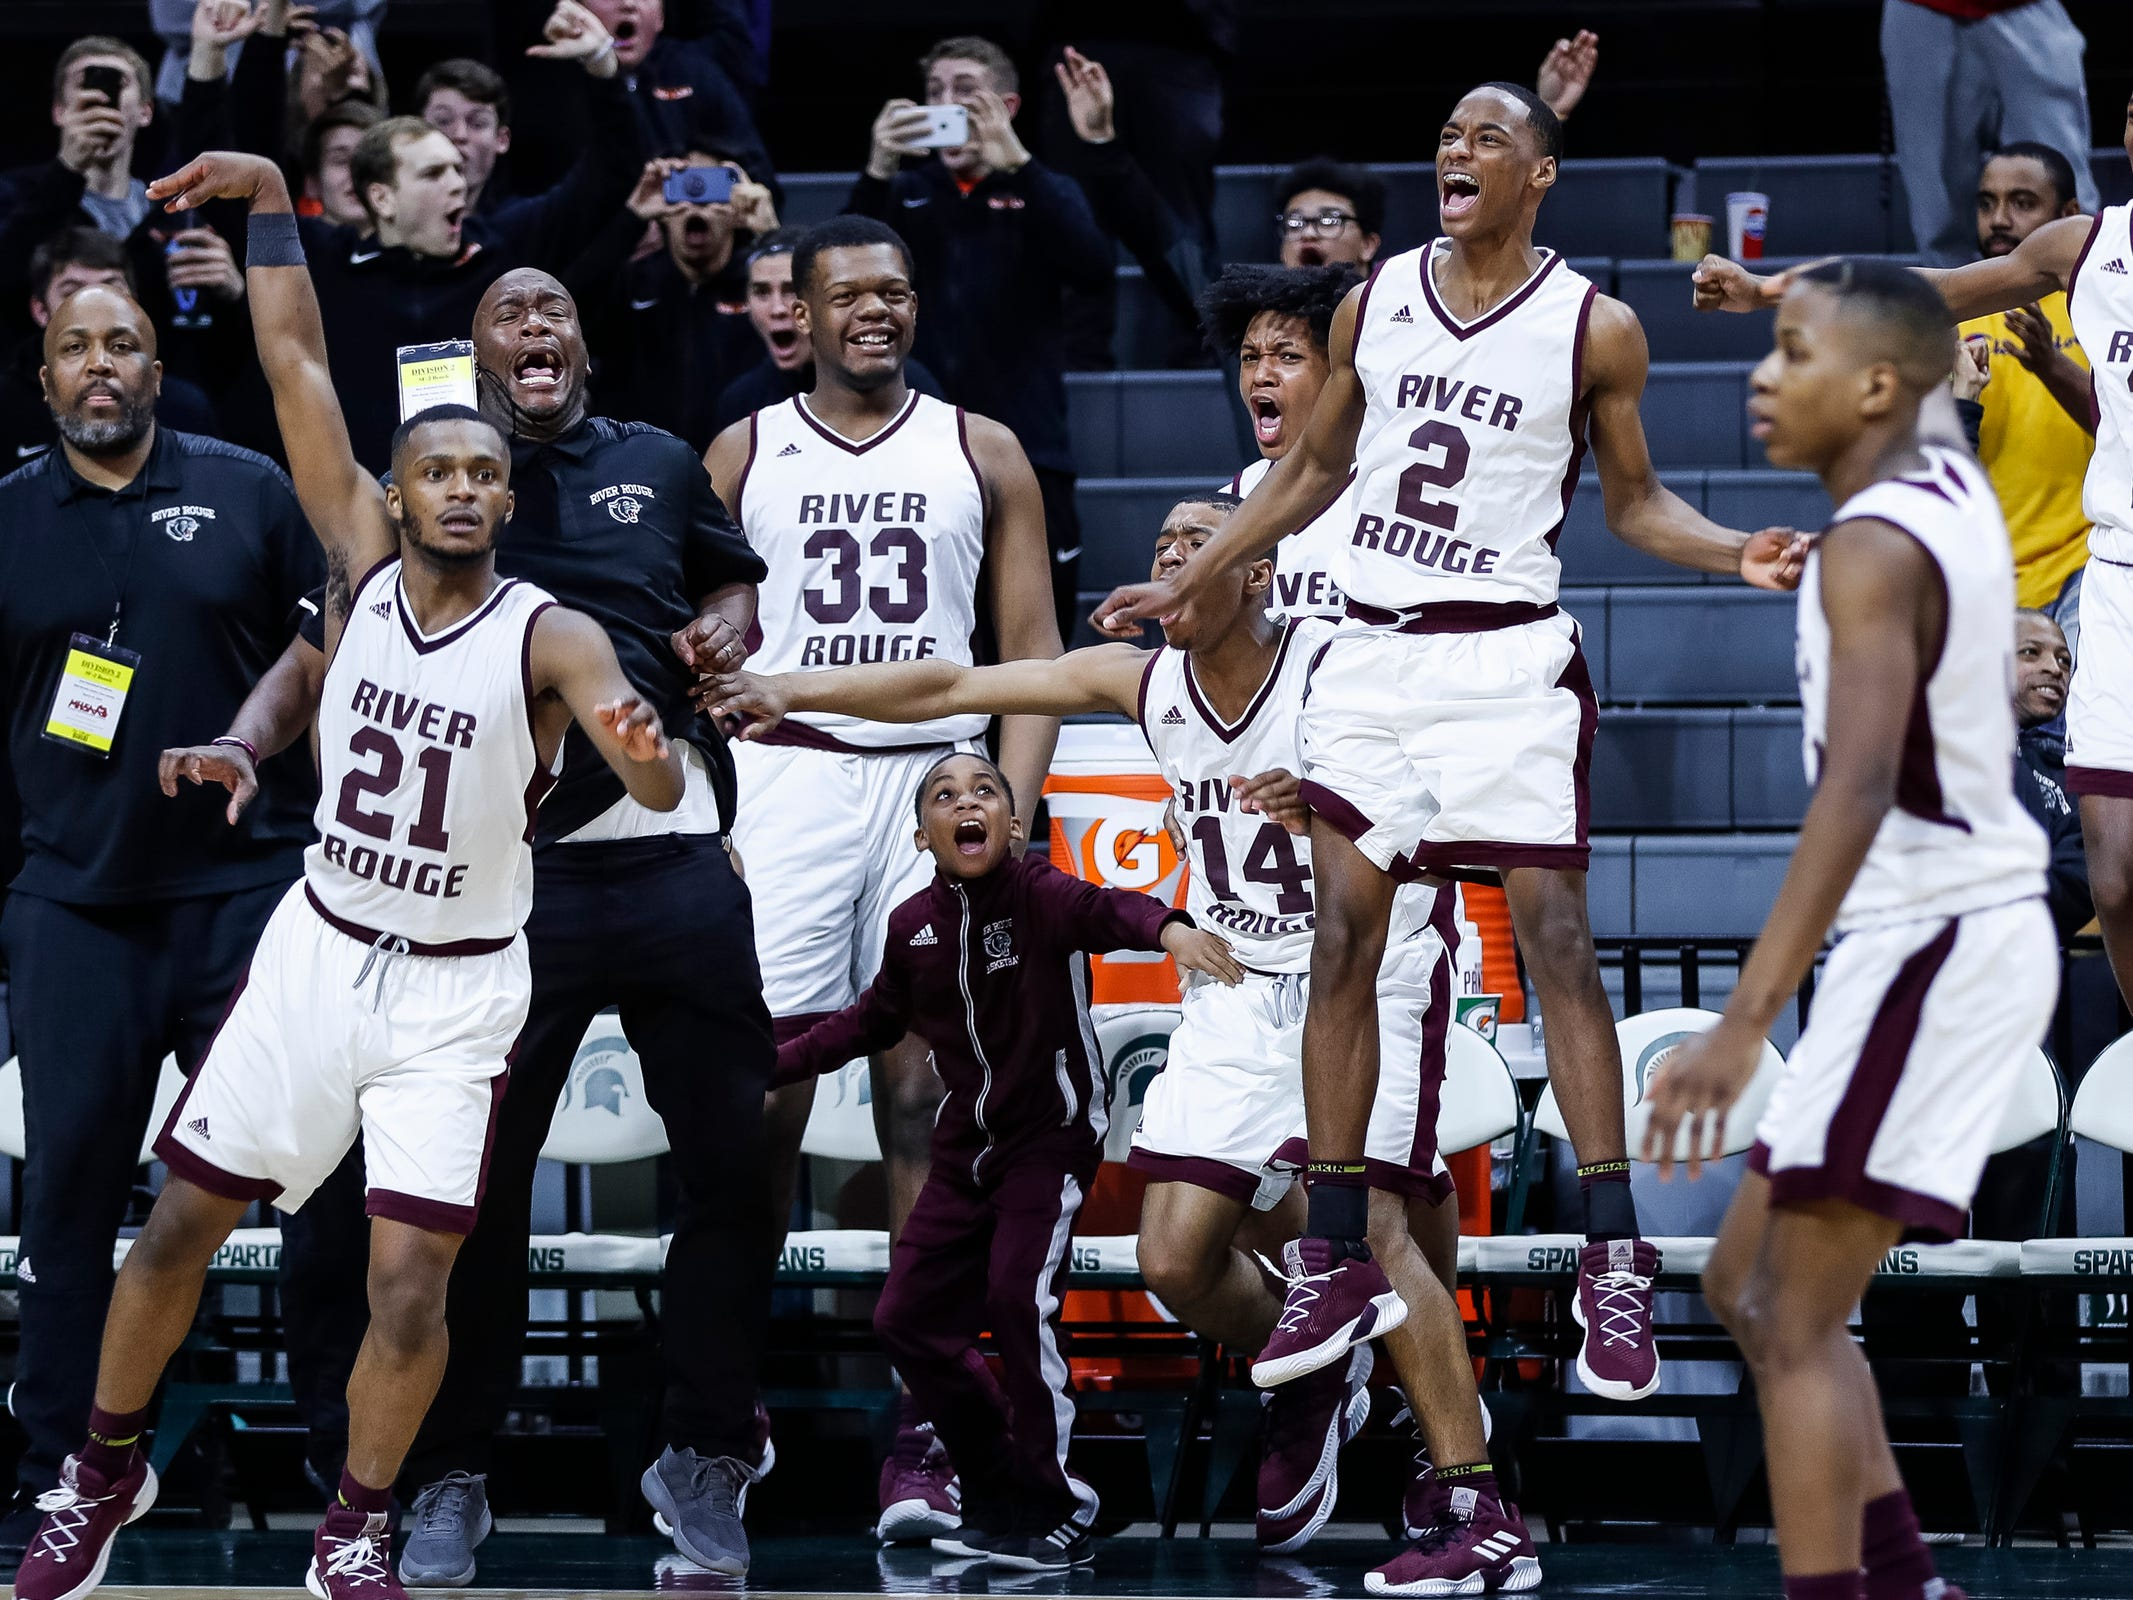 River Rouge bench celebrate a play against Harper Woods Chandler Park during the second half of MHSAA Division 2 semifinal at the Breslin Center in East Lansing, Friday, March 15, 2019.